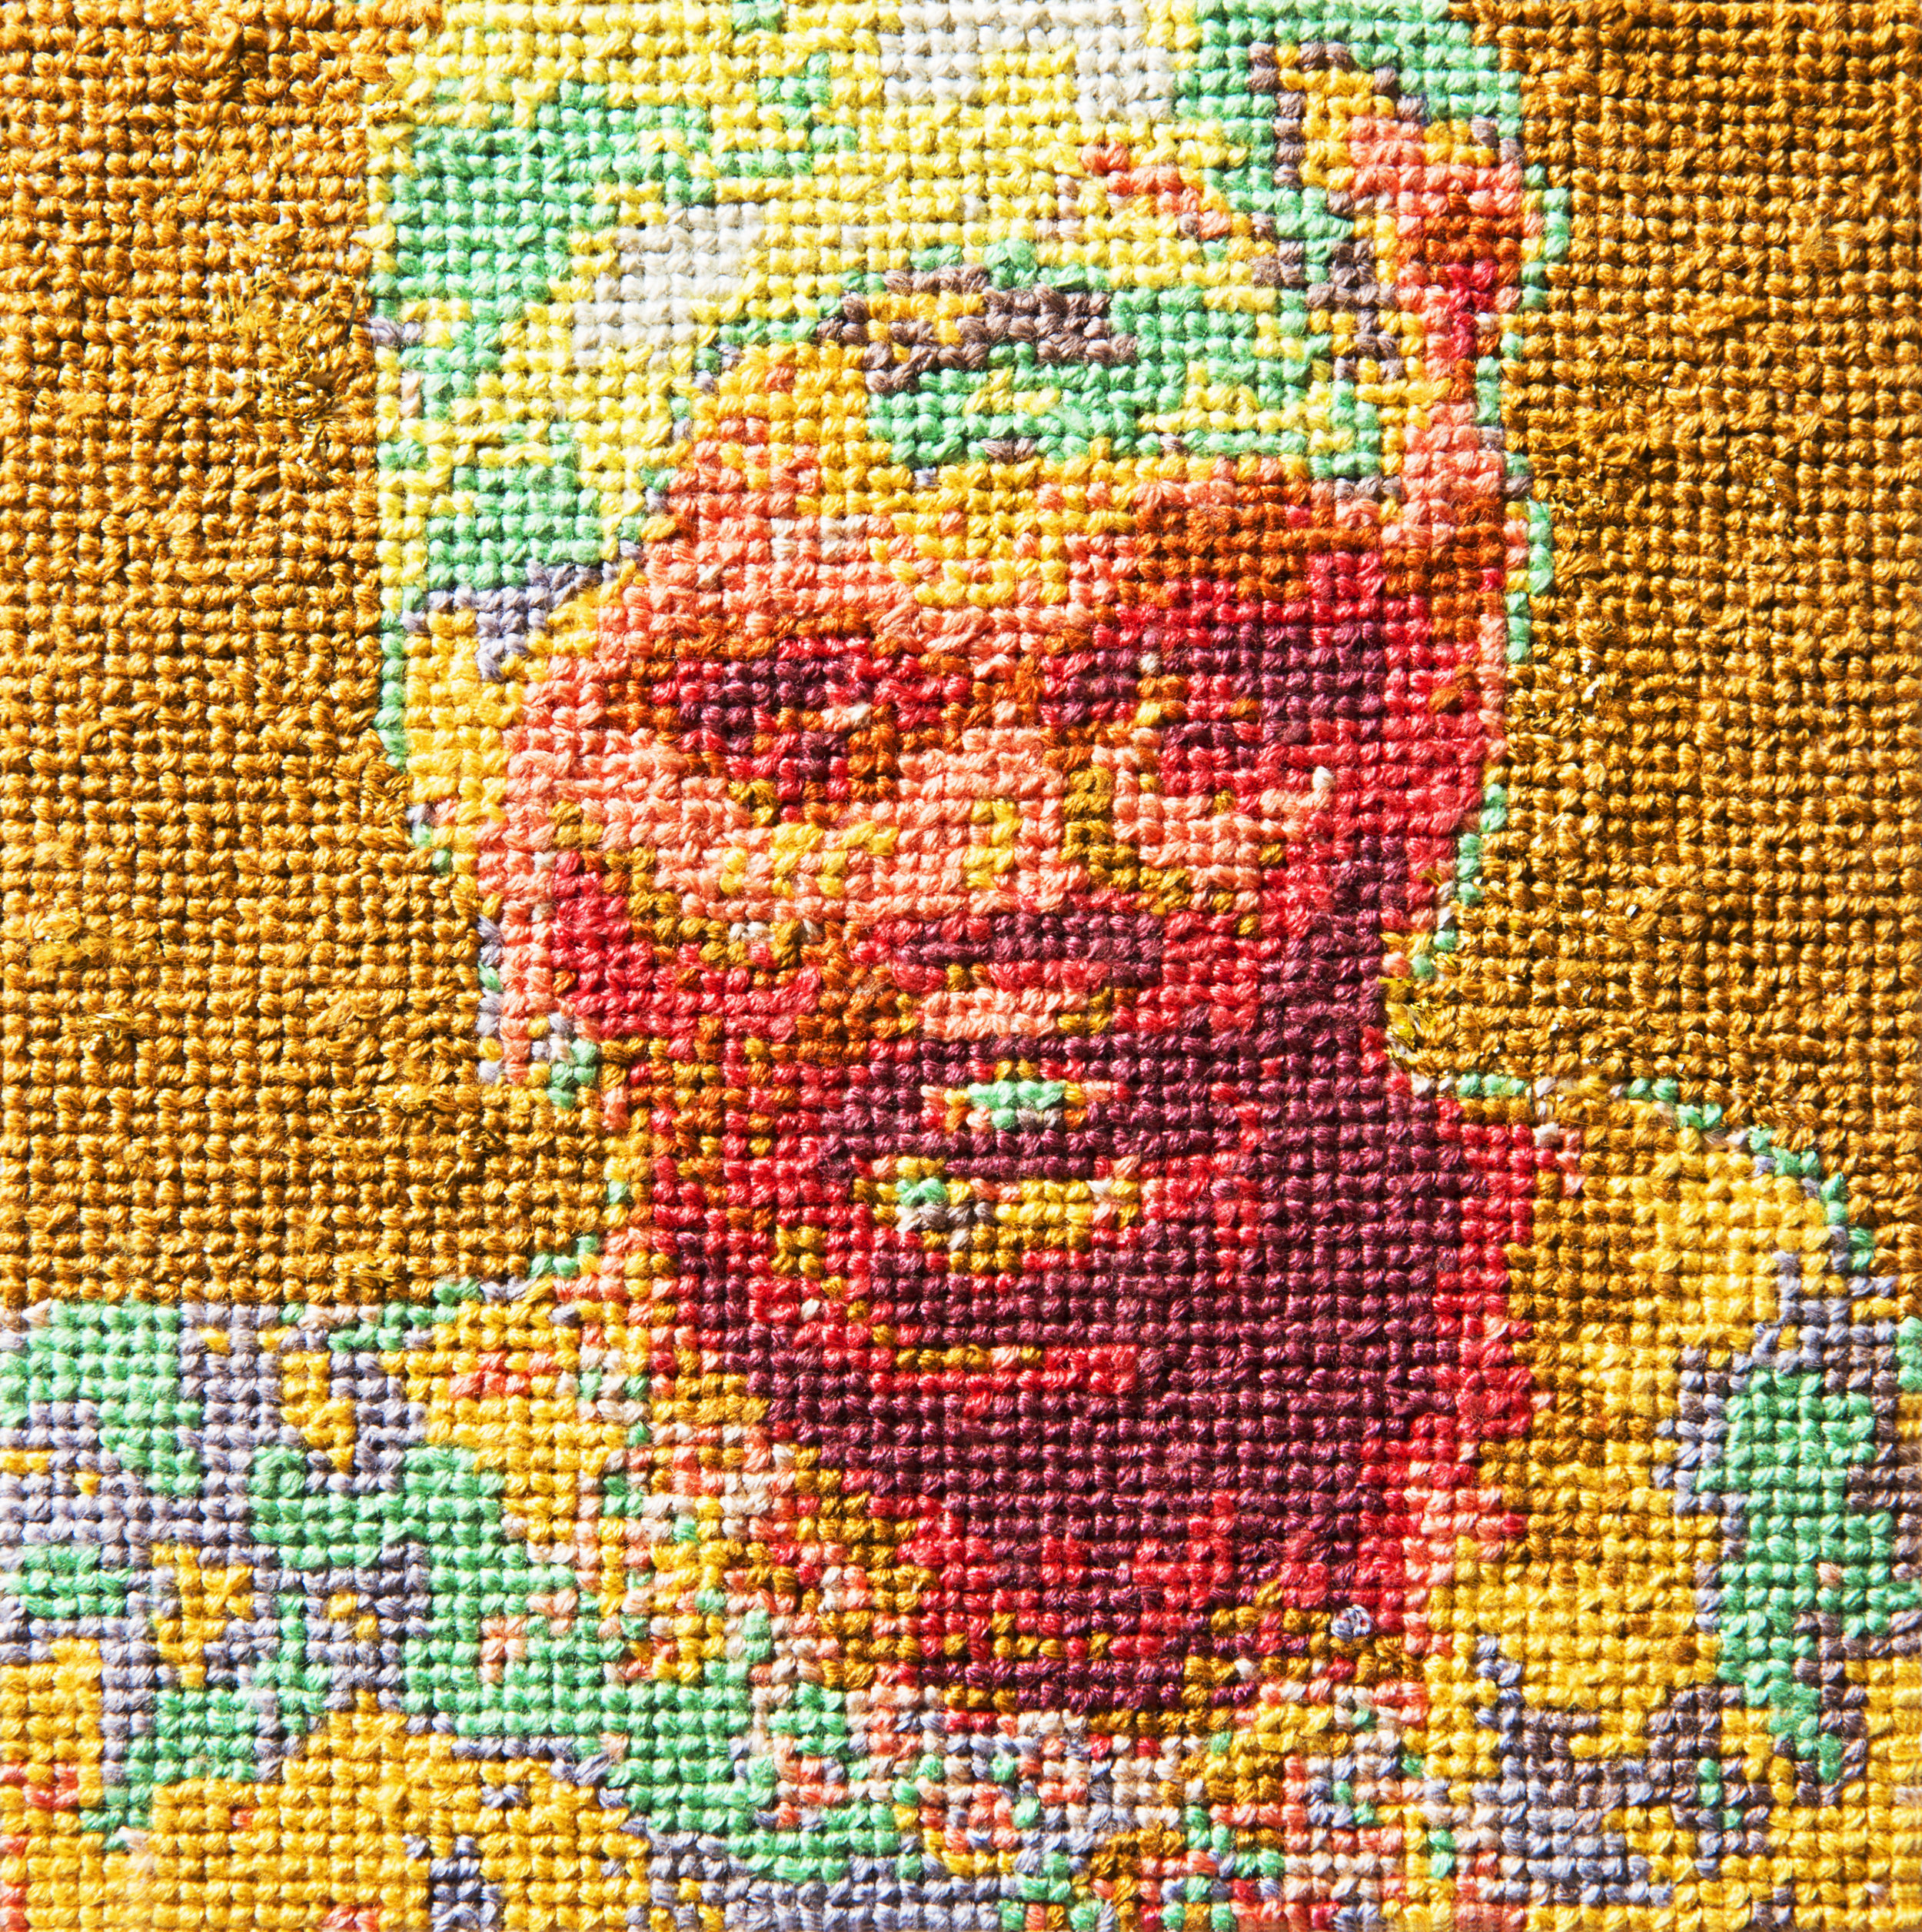 Frame 10   By Clay Butterworth  Cotton thread on aida cloth  5 x 5 inches  2013